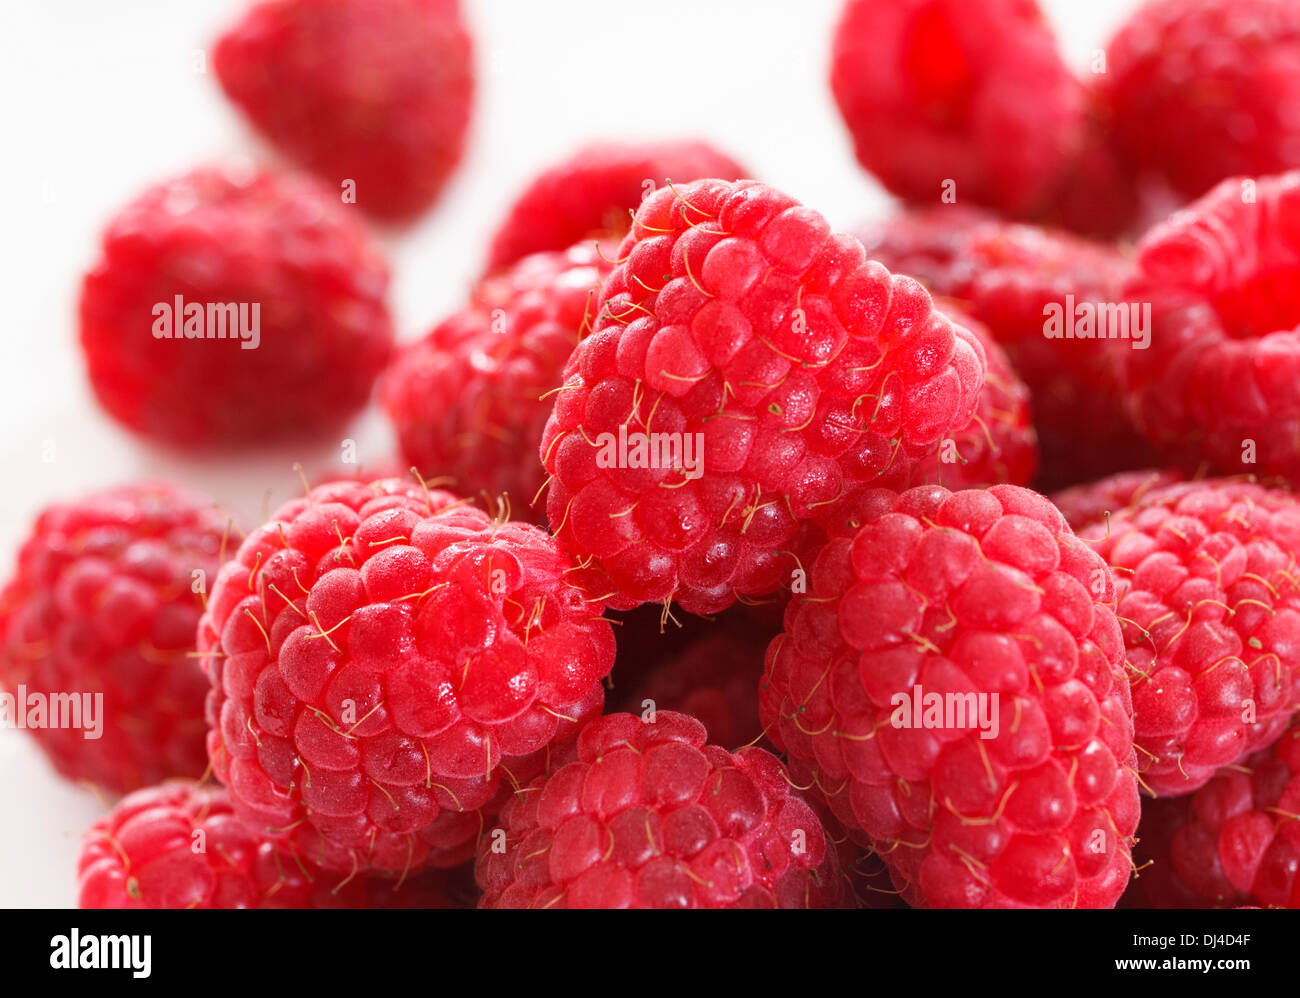 Pile of raspberries close up - Stock Image